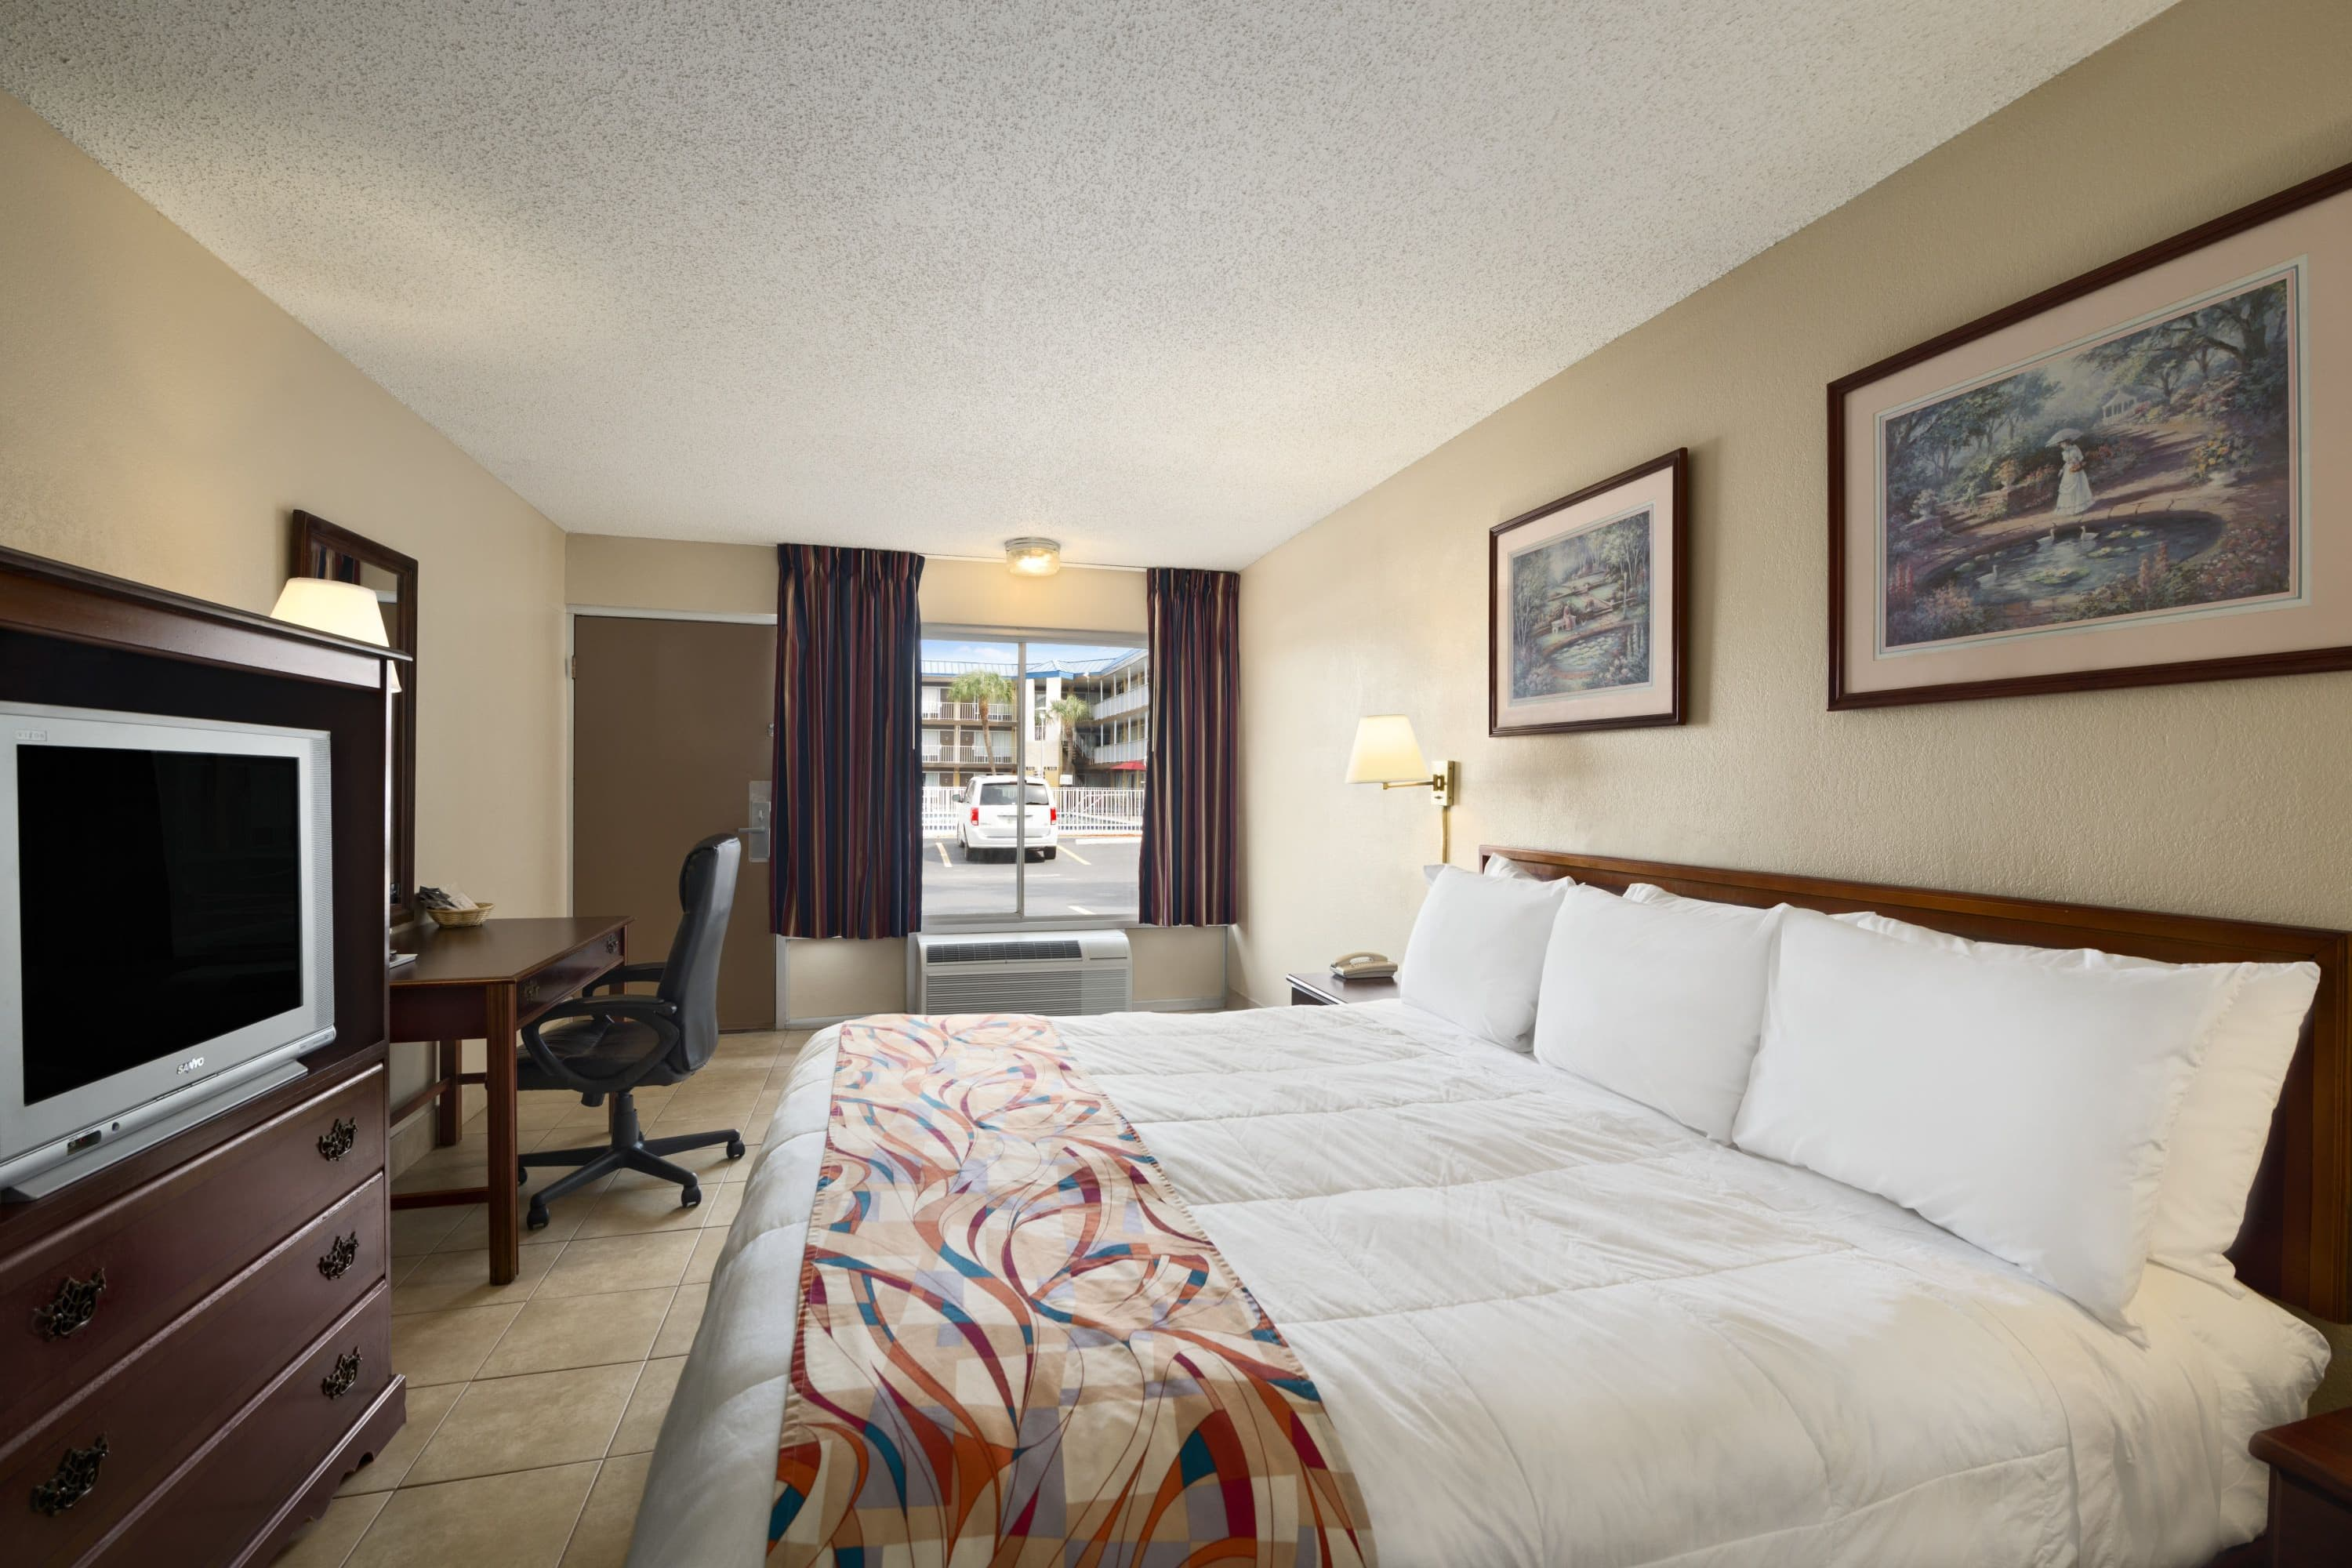 Days Inn North Tampa Near Busch Gardens Tampa Hotels FL 33612 2611